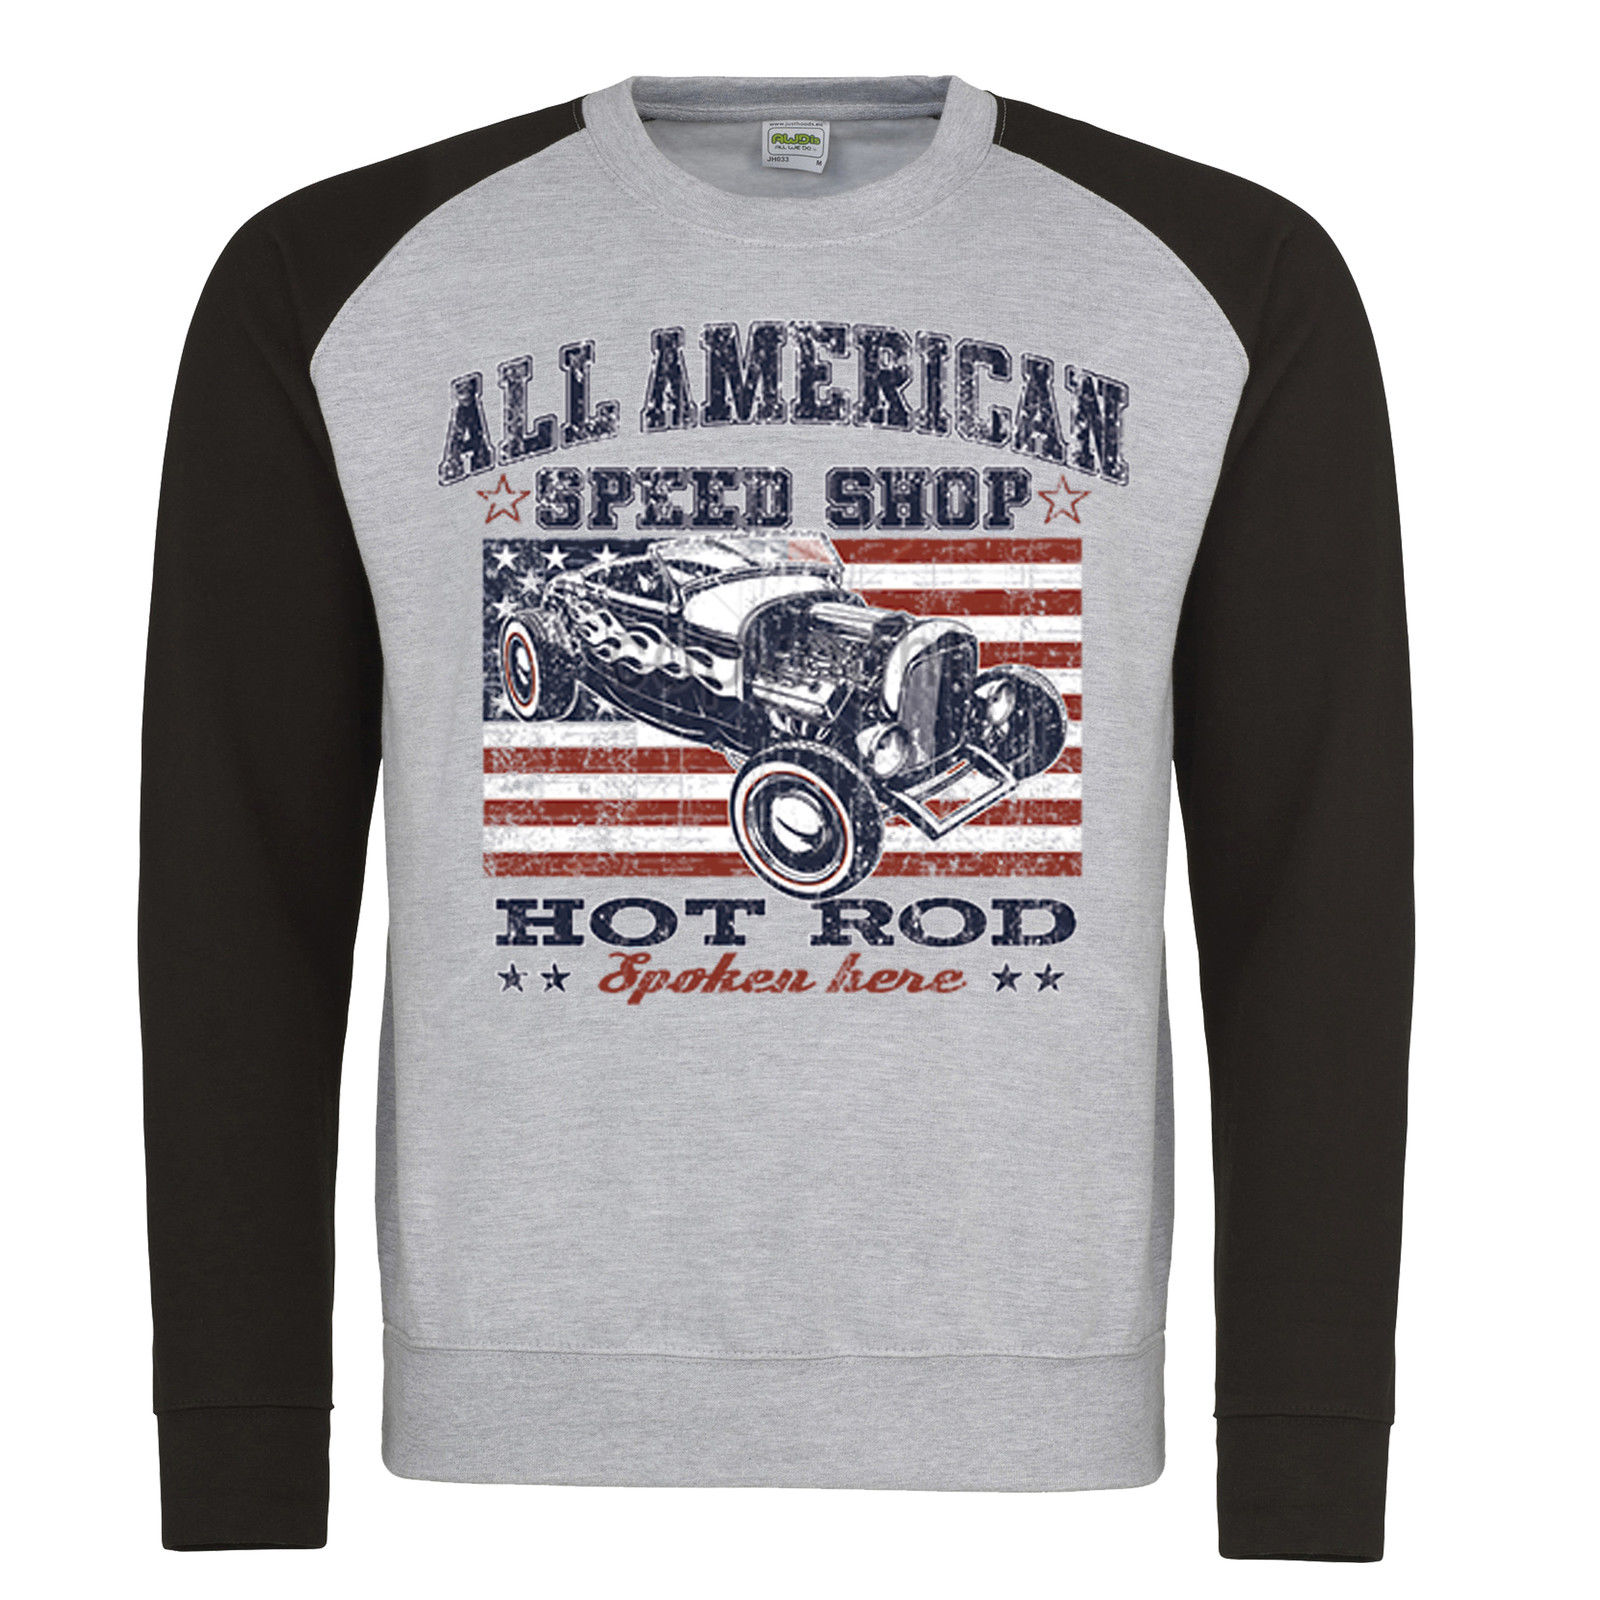 0dd1c20bd Hotrod 58 Sweatshirt Speed Shop Garage Vintage Classic Car Retro Kustom 213